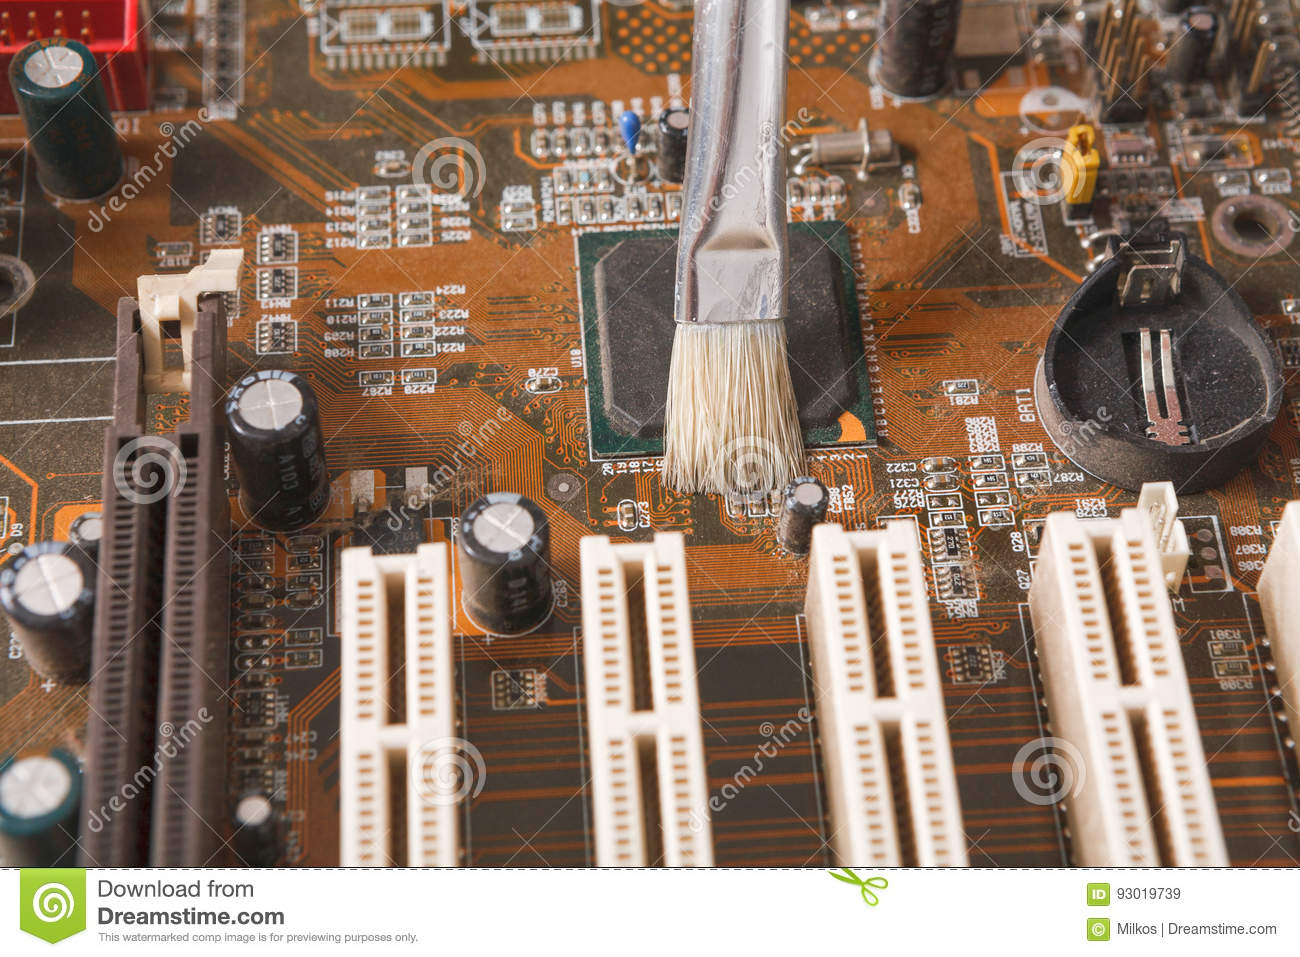 Cleaning Computer Components Close Up Stock Image - Image of dirty